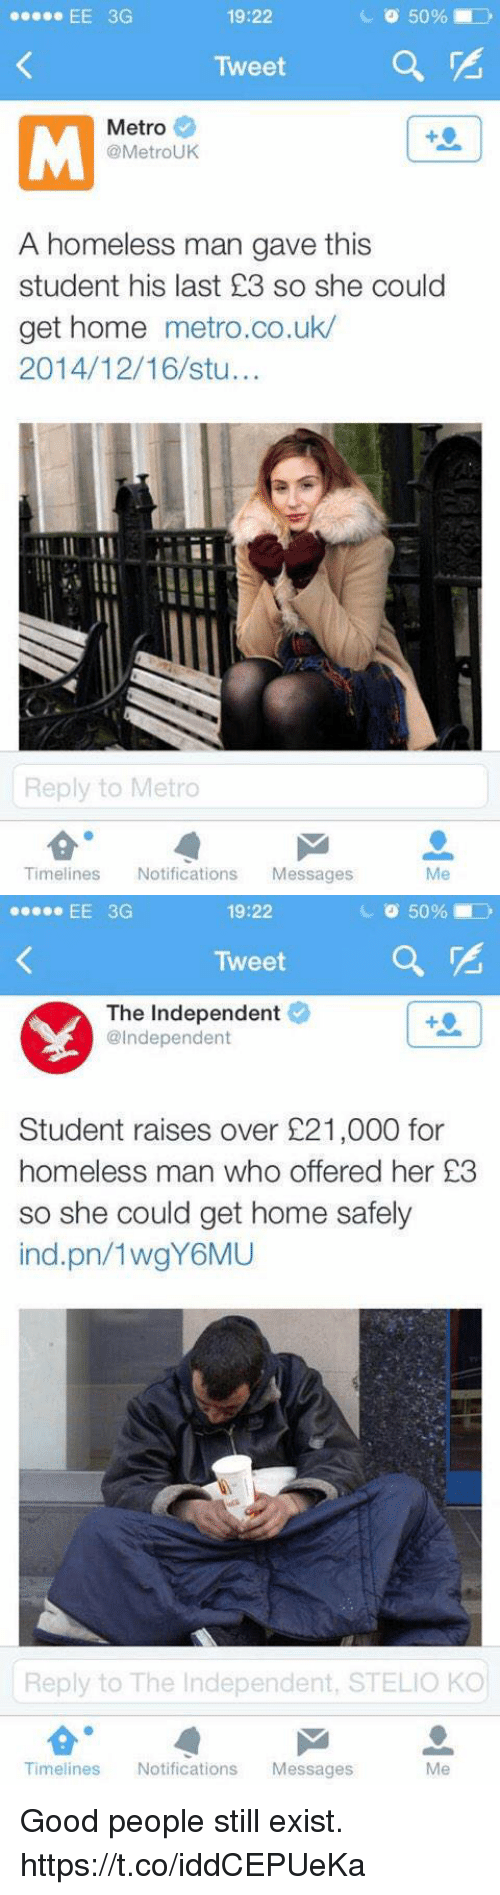 Homeless, Memes, and Good: 19:22  Tweet  Metro  @MetroUK  A homeless man gave this  student his last £3 so she could  get home metro.co.uk/  2014/12/16/stu...  Ily  Reply to Metro  Timelines Notifications Messages  Me   19:22  Tweet  The Independent  se EE 3G  @Independent  Student raises over £21,000 for  homeless man who offered her 23  so she could get home safely  ind.pn/1wgY6MU  Reply to The Independent, STELIO KO  Me  Timelines Notifications Messages Good people still exist. https://t.co/iddCEPUeKa